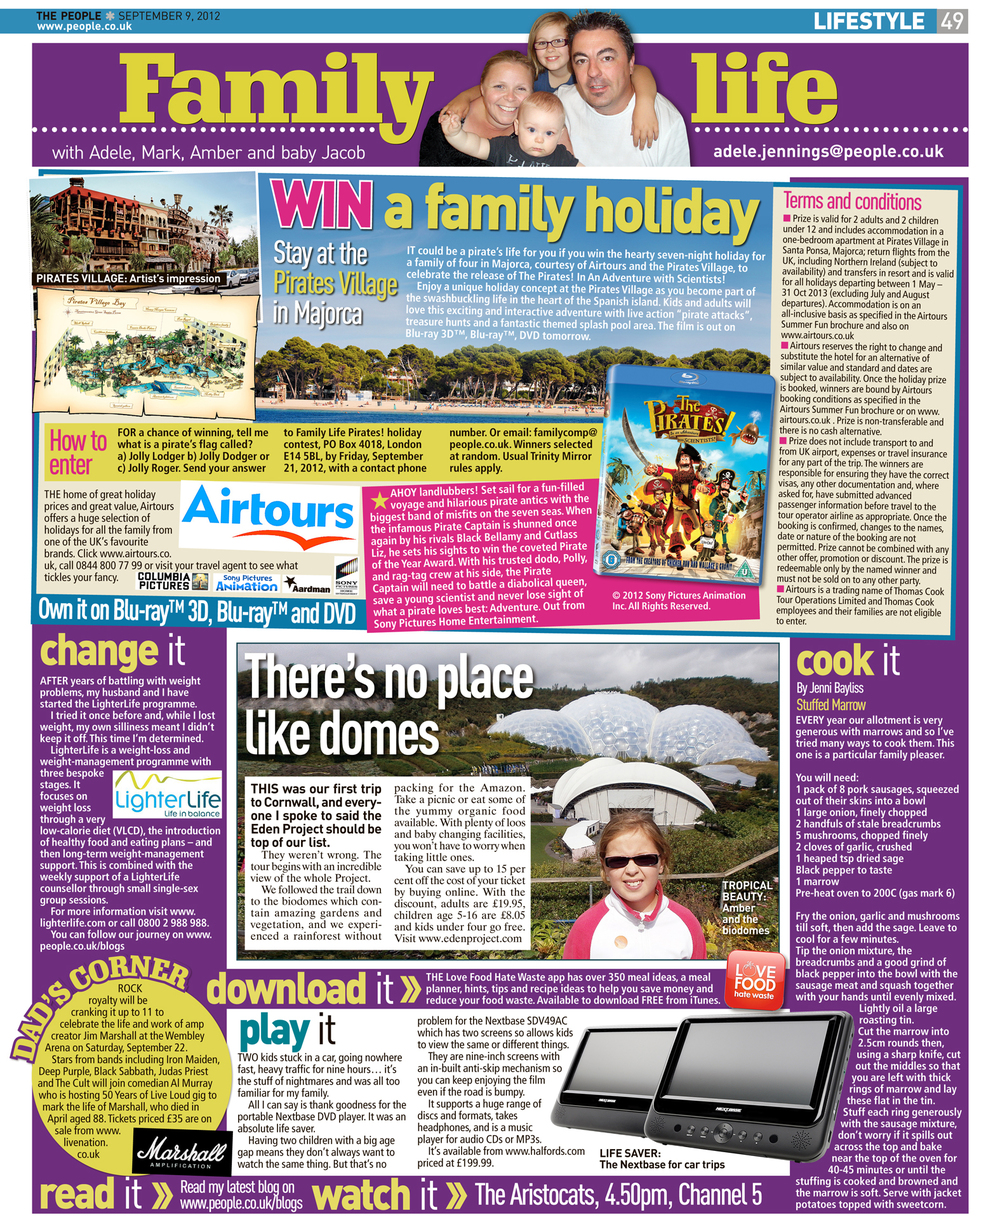 Published in The Sunday People, September 9, 2012